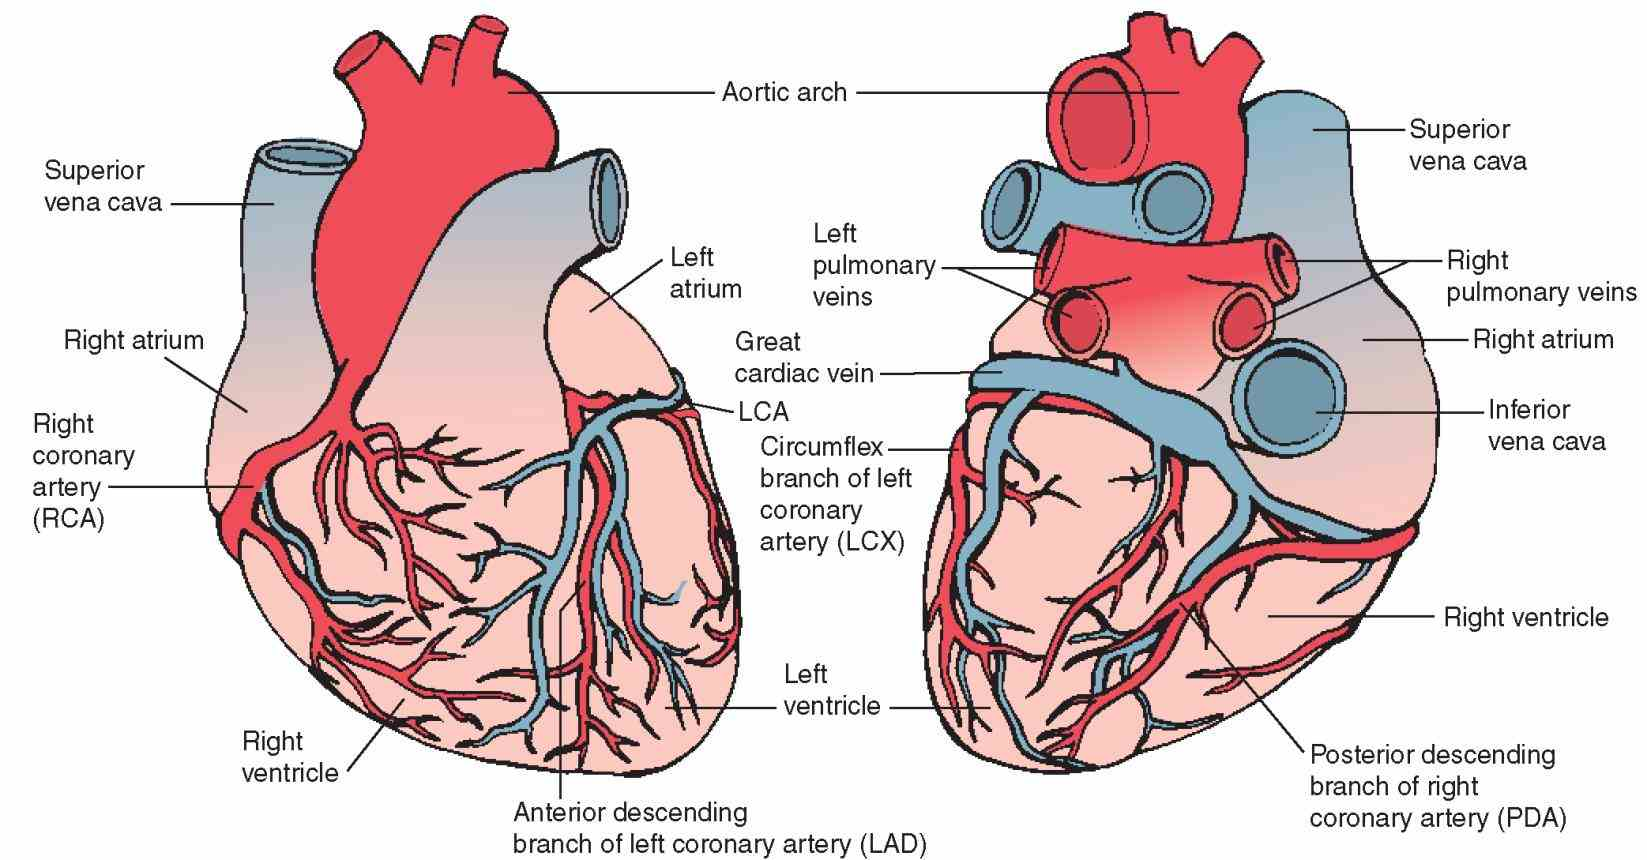 supply blood to the heart muscle like all other tissues in body needs oxygenrich function and anatomical Arteries Of